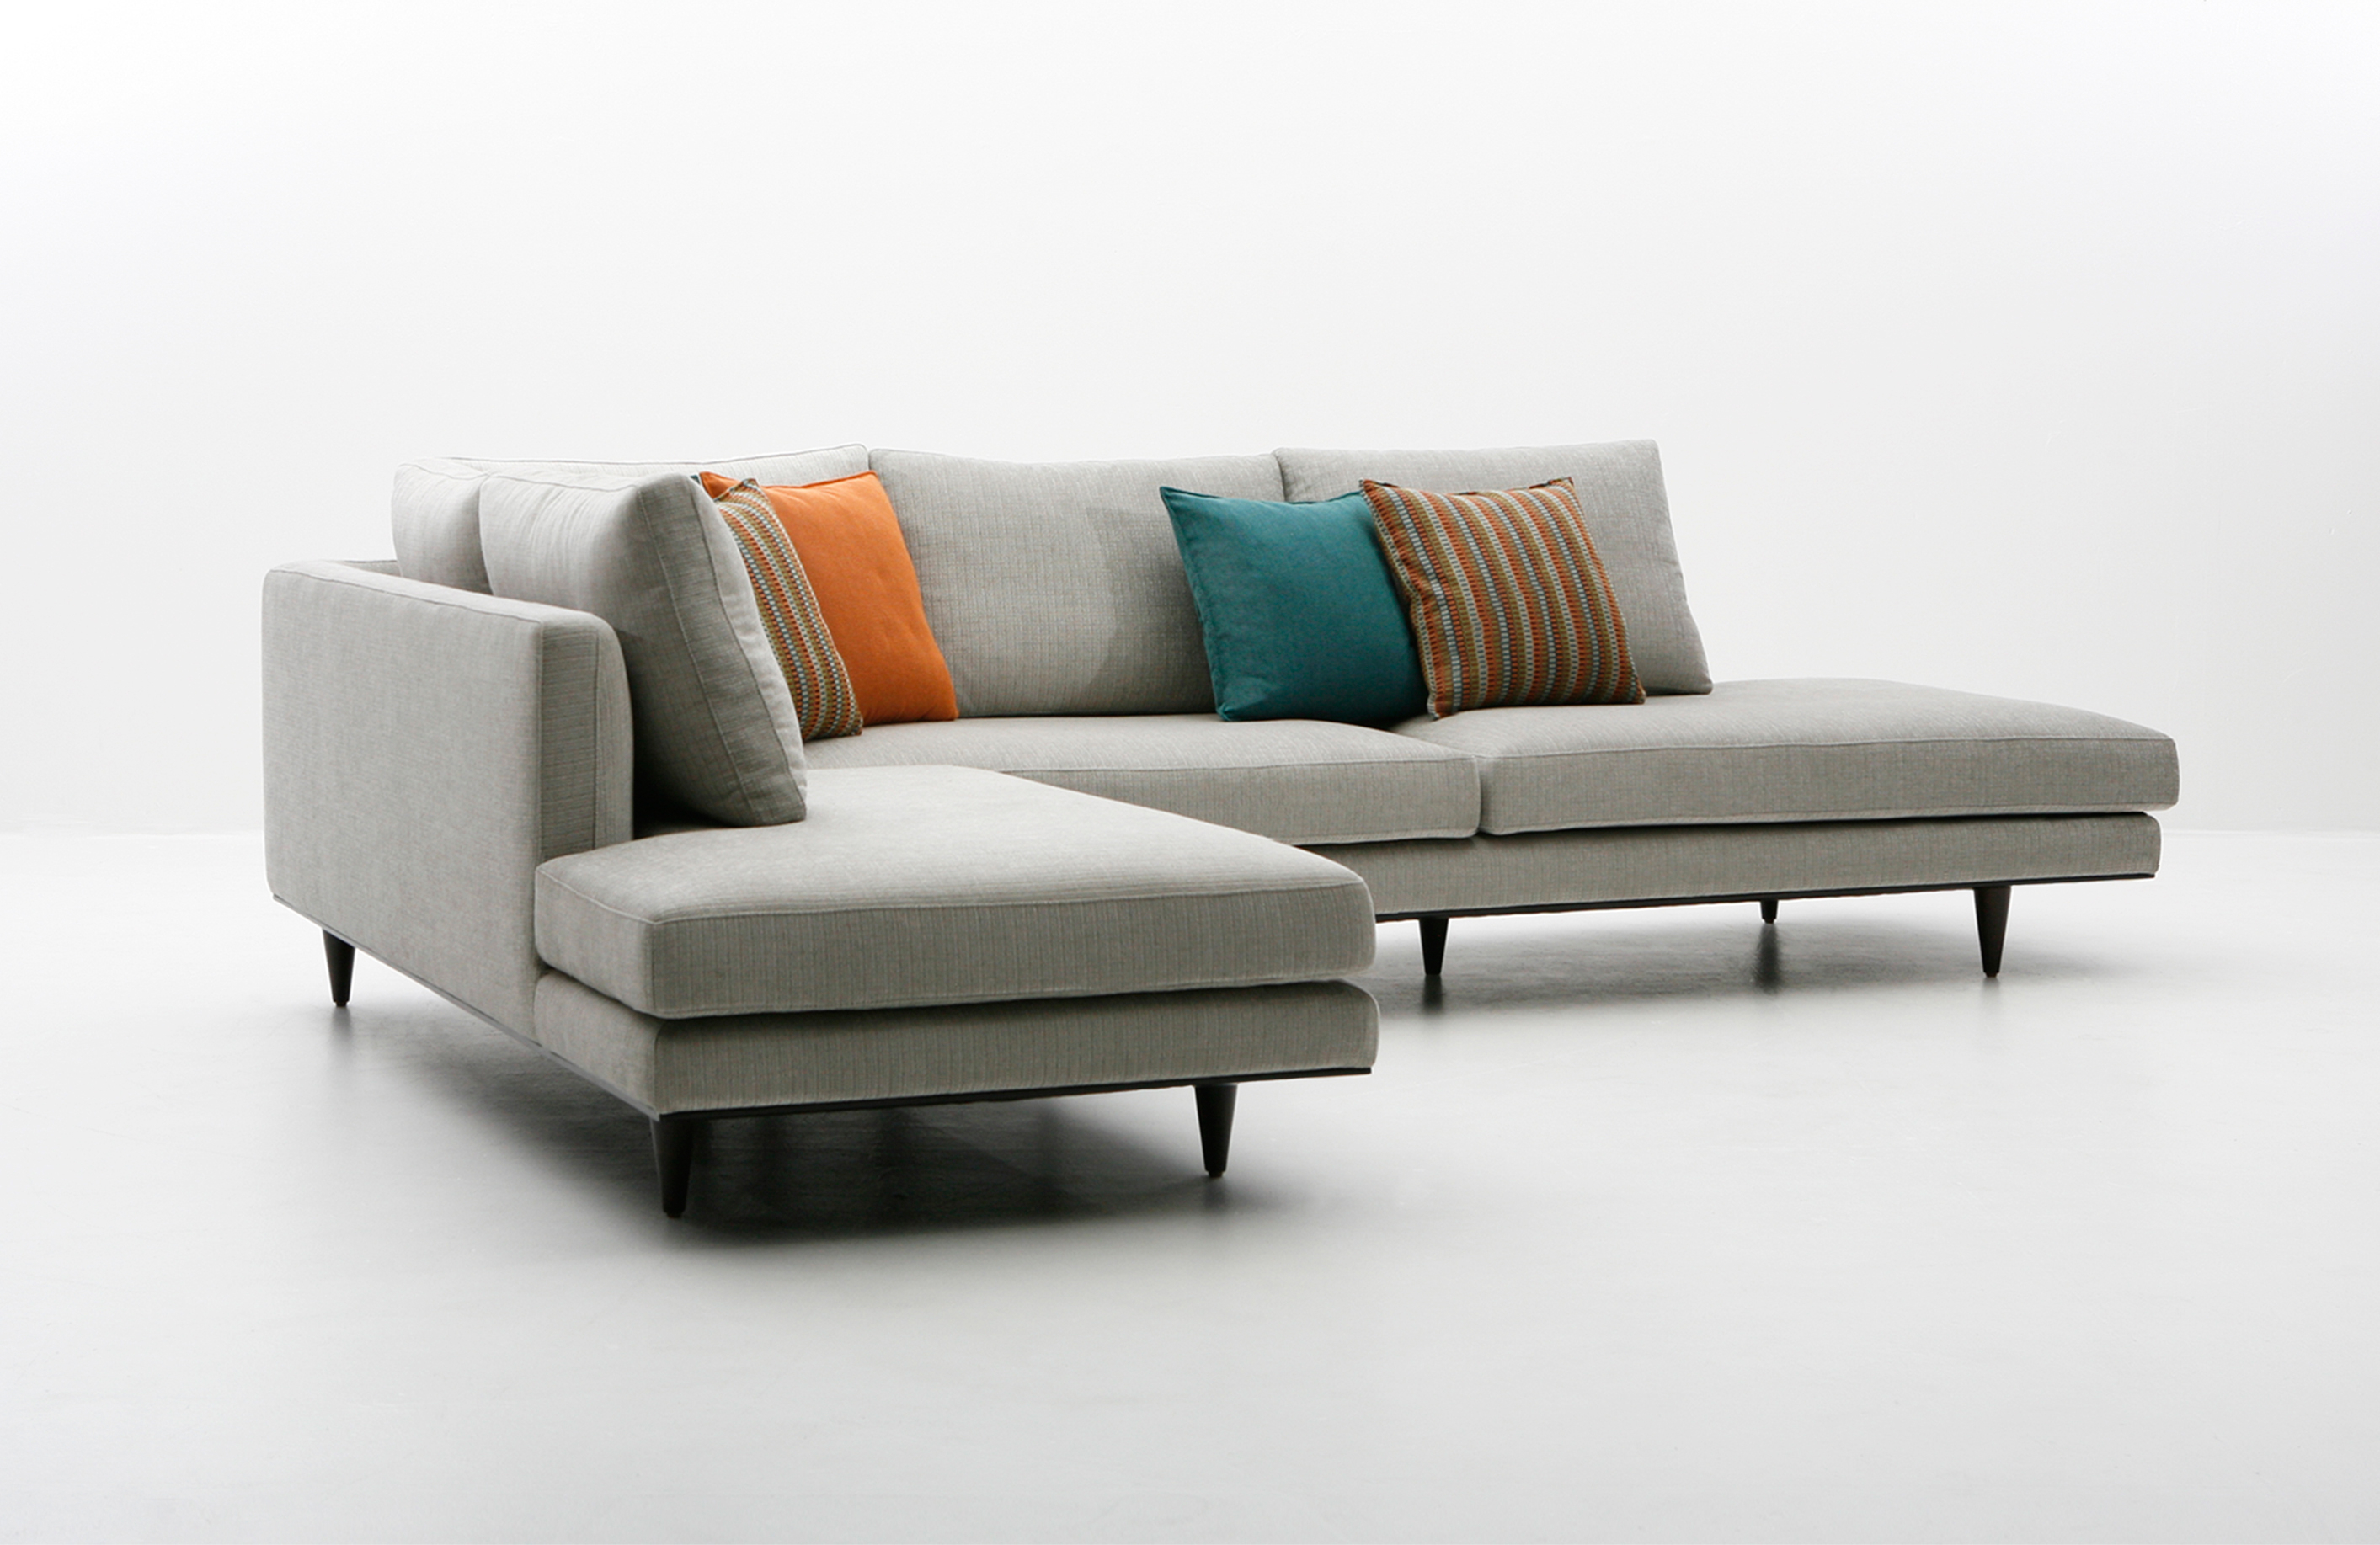 Dellarobbia Milo Sofa, Chair And Sectional | Living Room | Sklar For Milo Sofa Chairs (View 5 of 20)